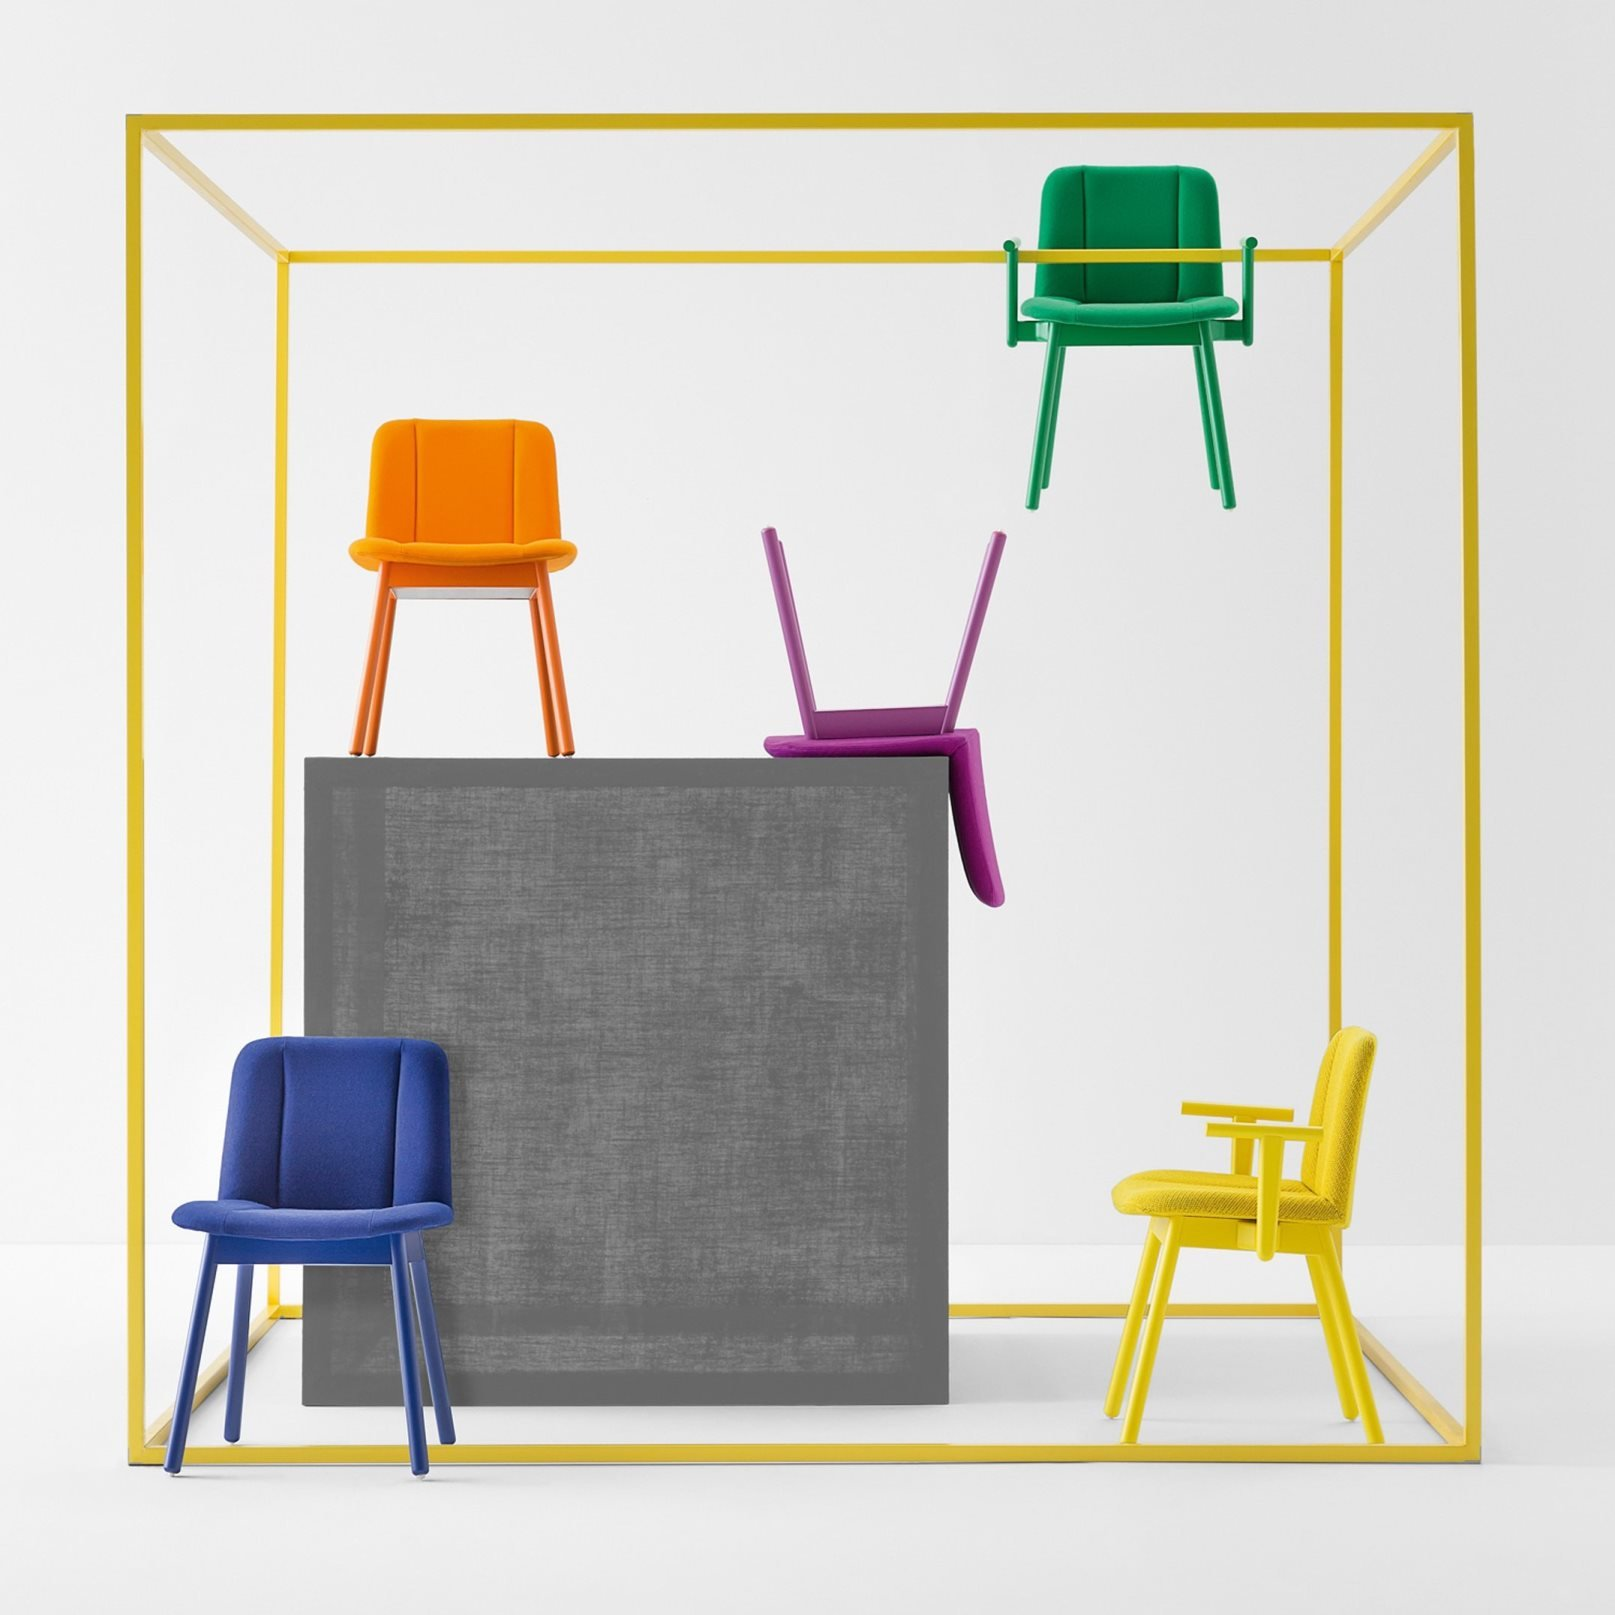 Hippy Dining Chair from Billiani, designed by Emilio Nanni